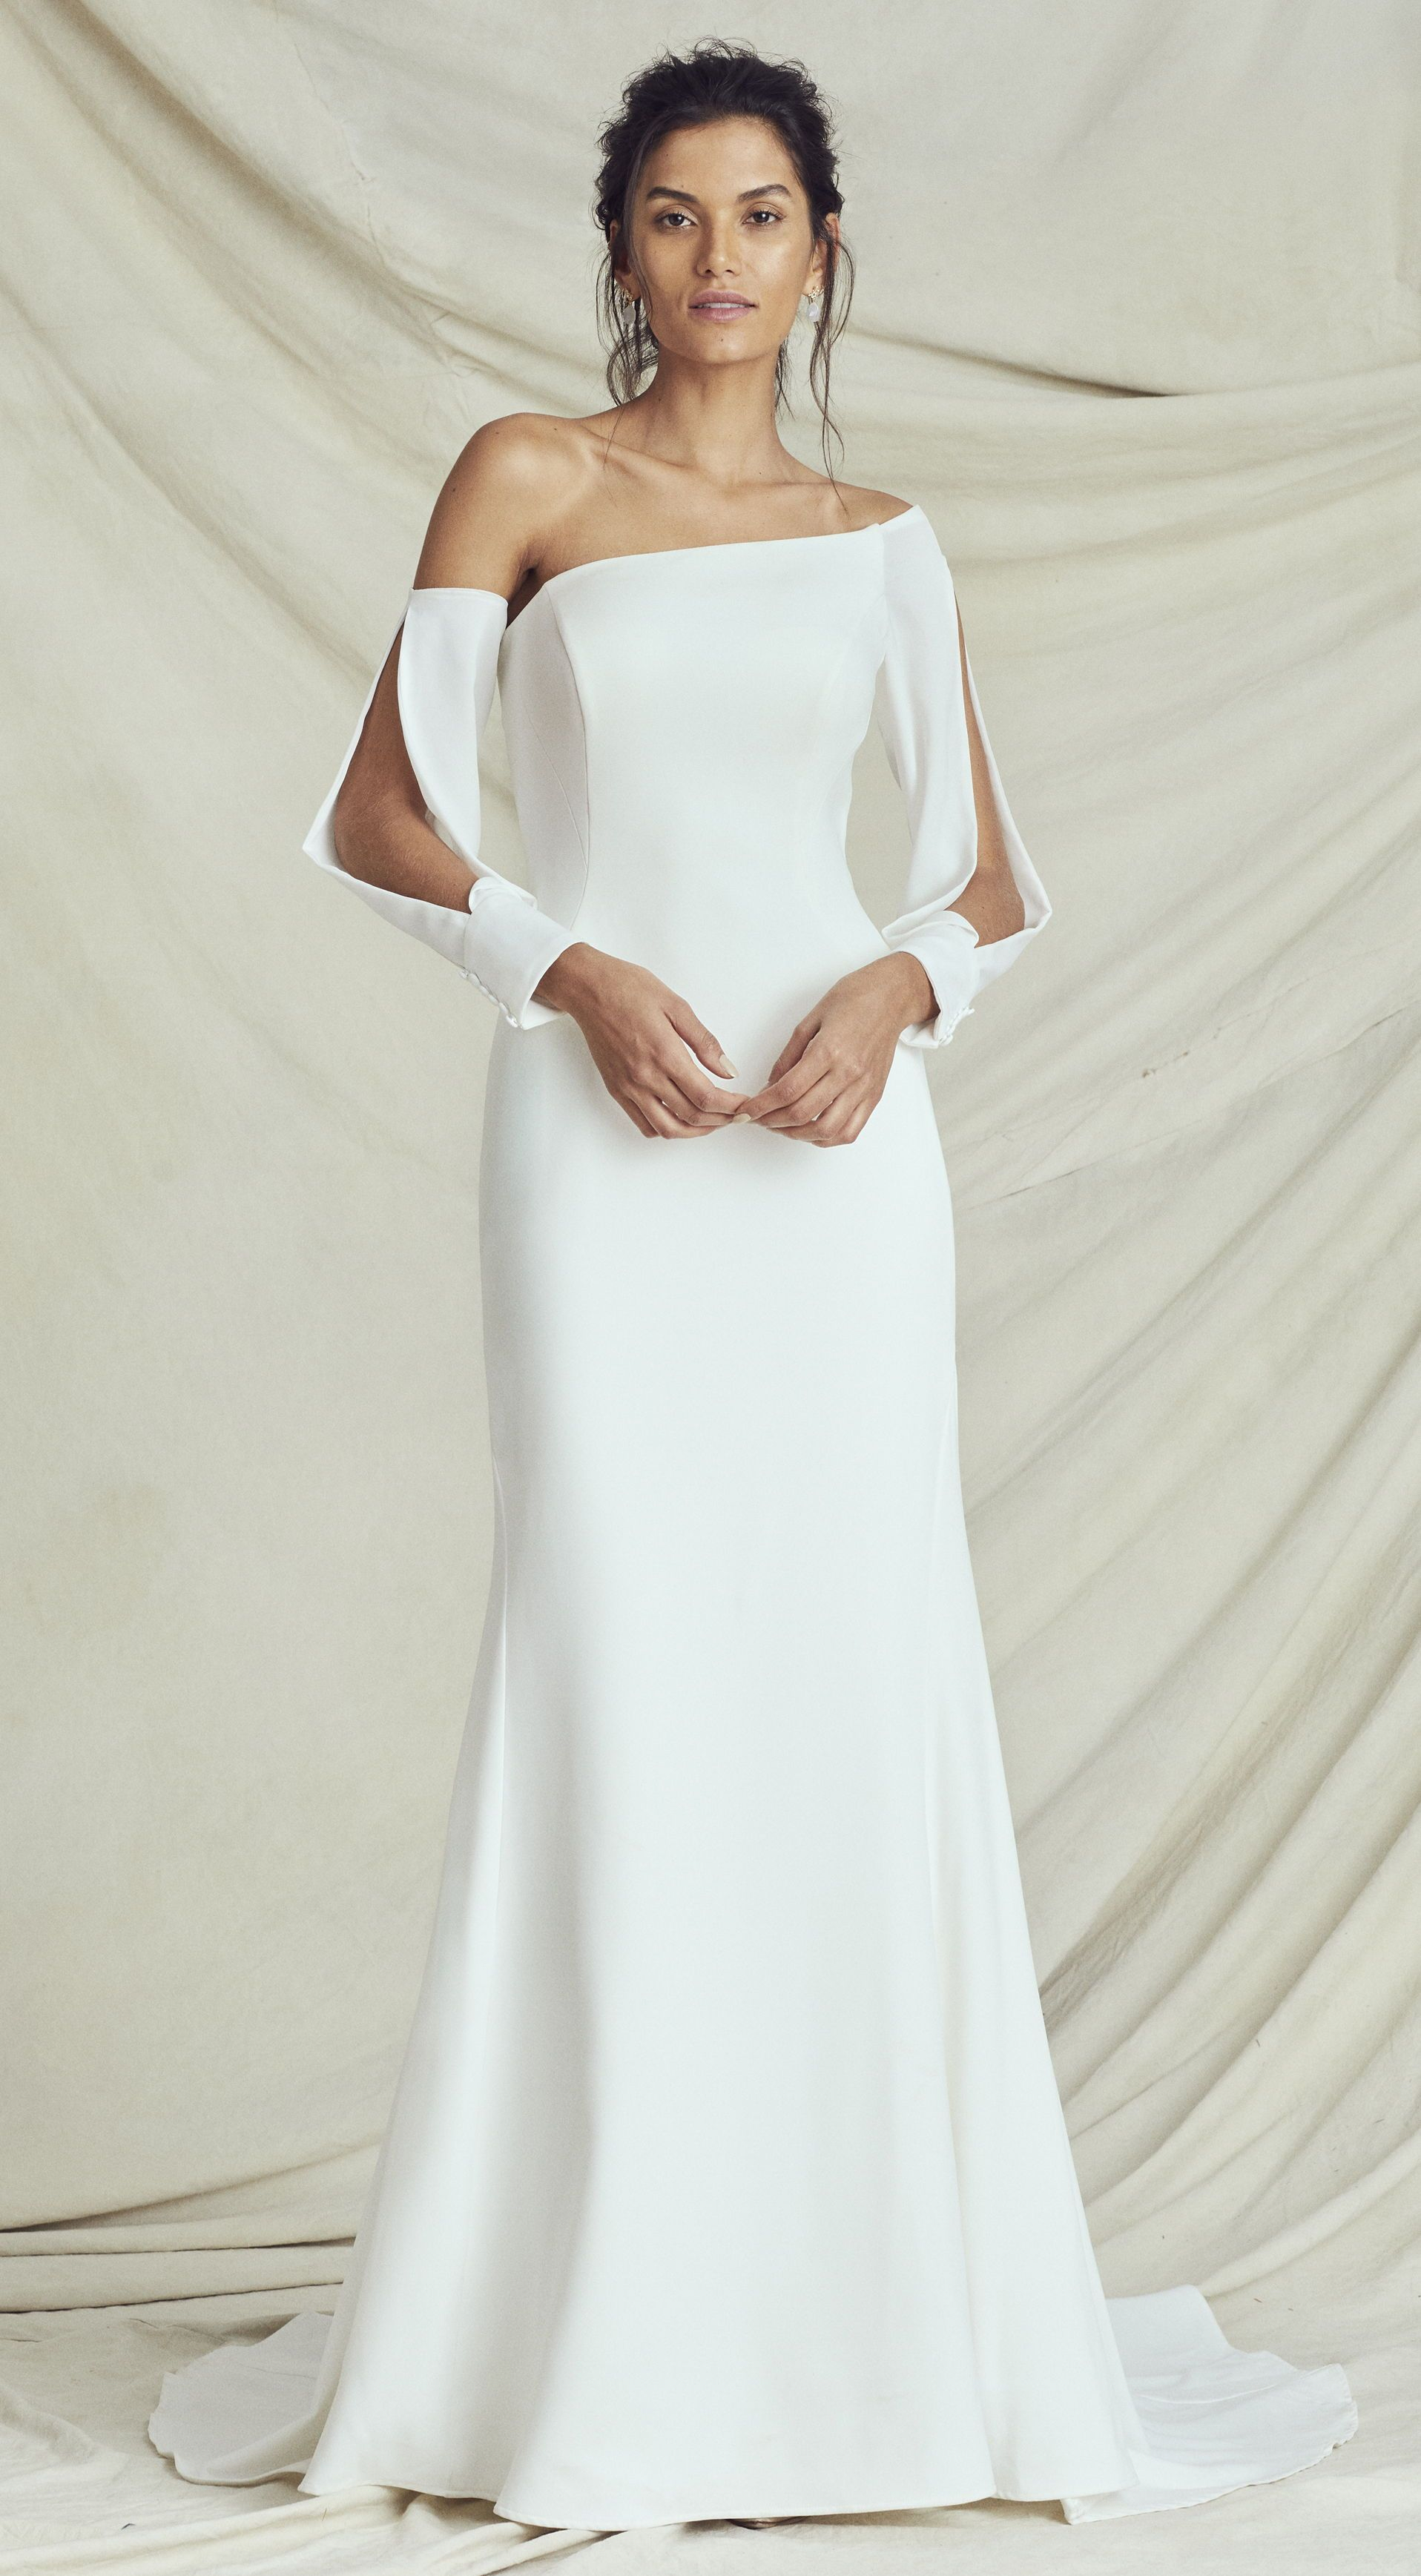 0f6c0b3be1 Kelly Faetanini Fall 2019 Wedding Dresses Carrousel Bridal Collection.  Unique sheath simple modern wedding dress with long detachable sleeves one  shoulder ...